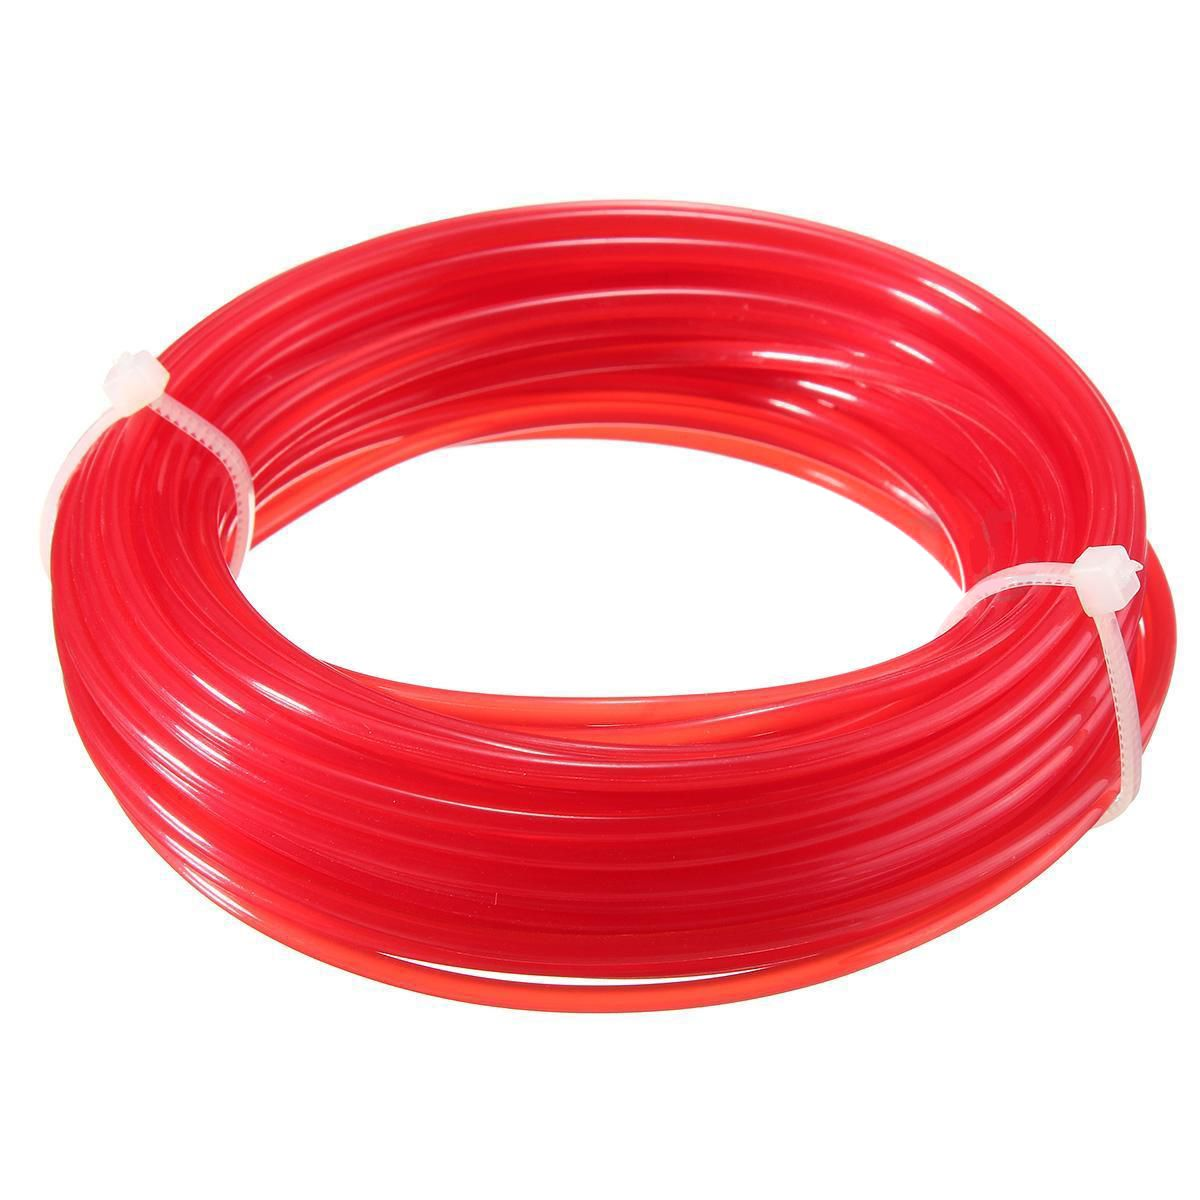 Durable Mayitr 2mm*10m Grass Trimmer Strimmer Line Nylon Cord Wire Round String For Lawn Mover Replacement цена